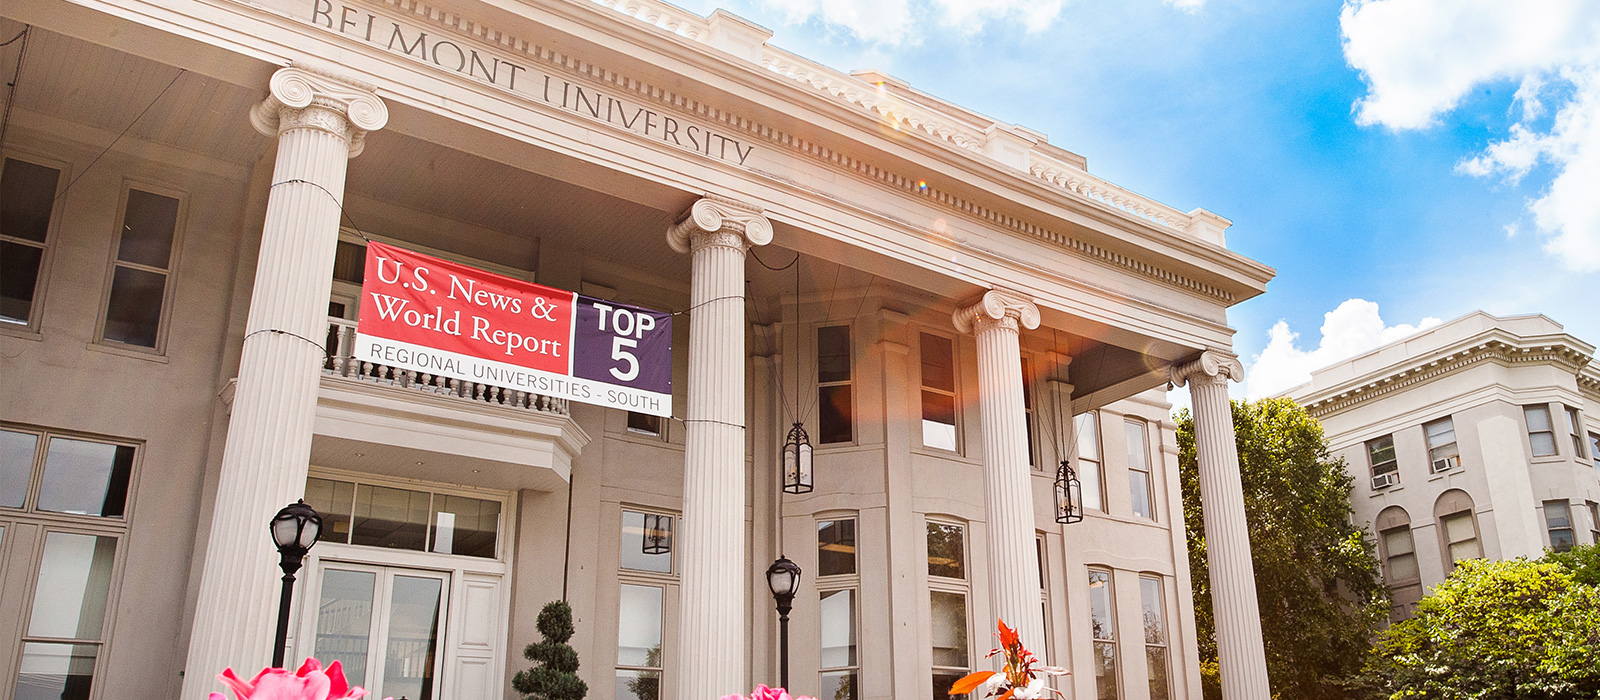 Top 5! Belmont University Lands Near Top of Annual U.S. News Rankings of Southern Colleges